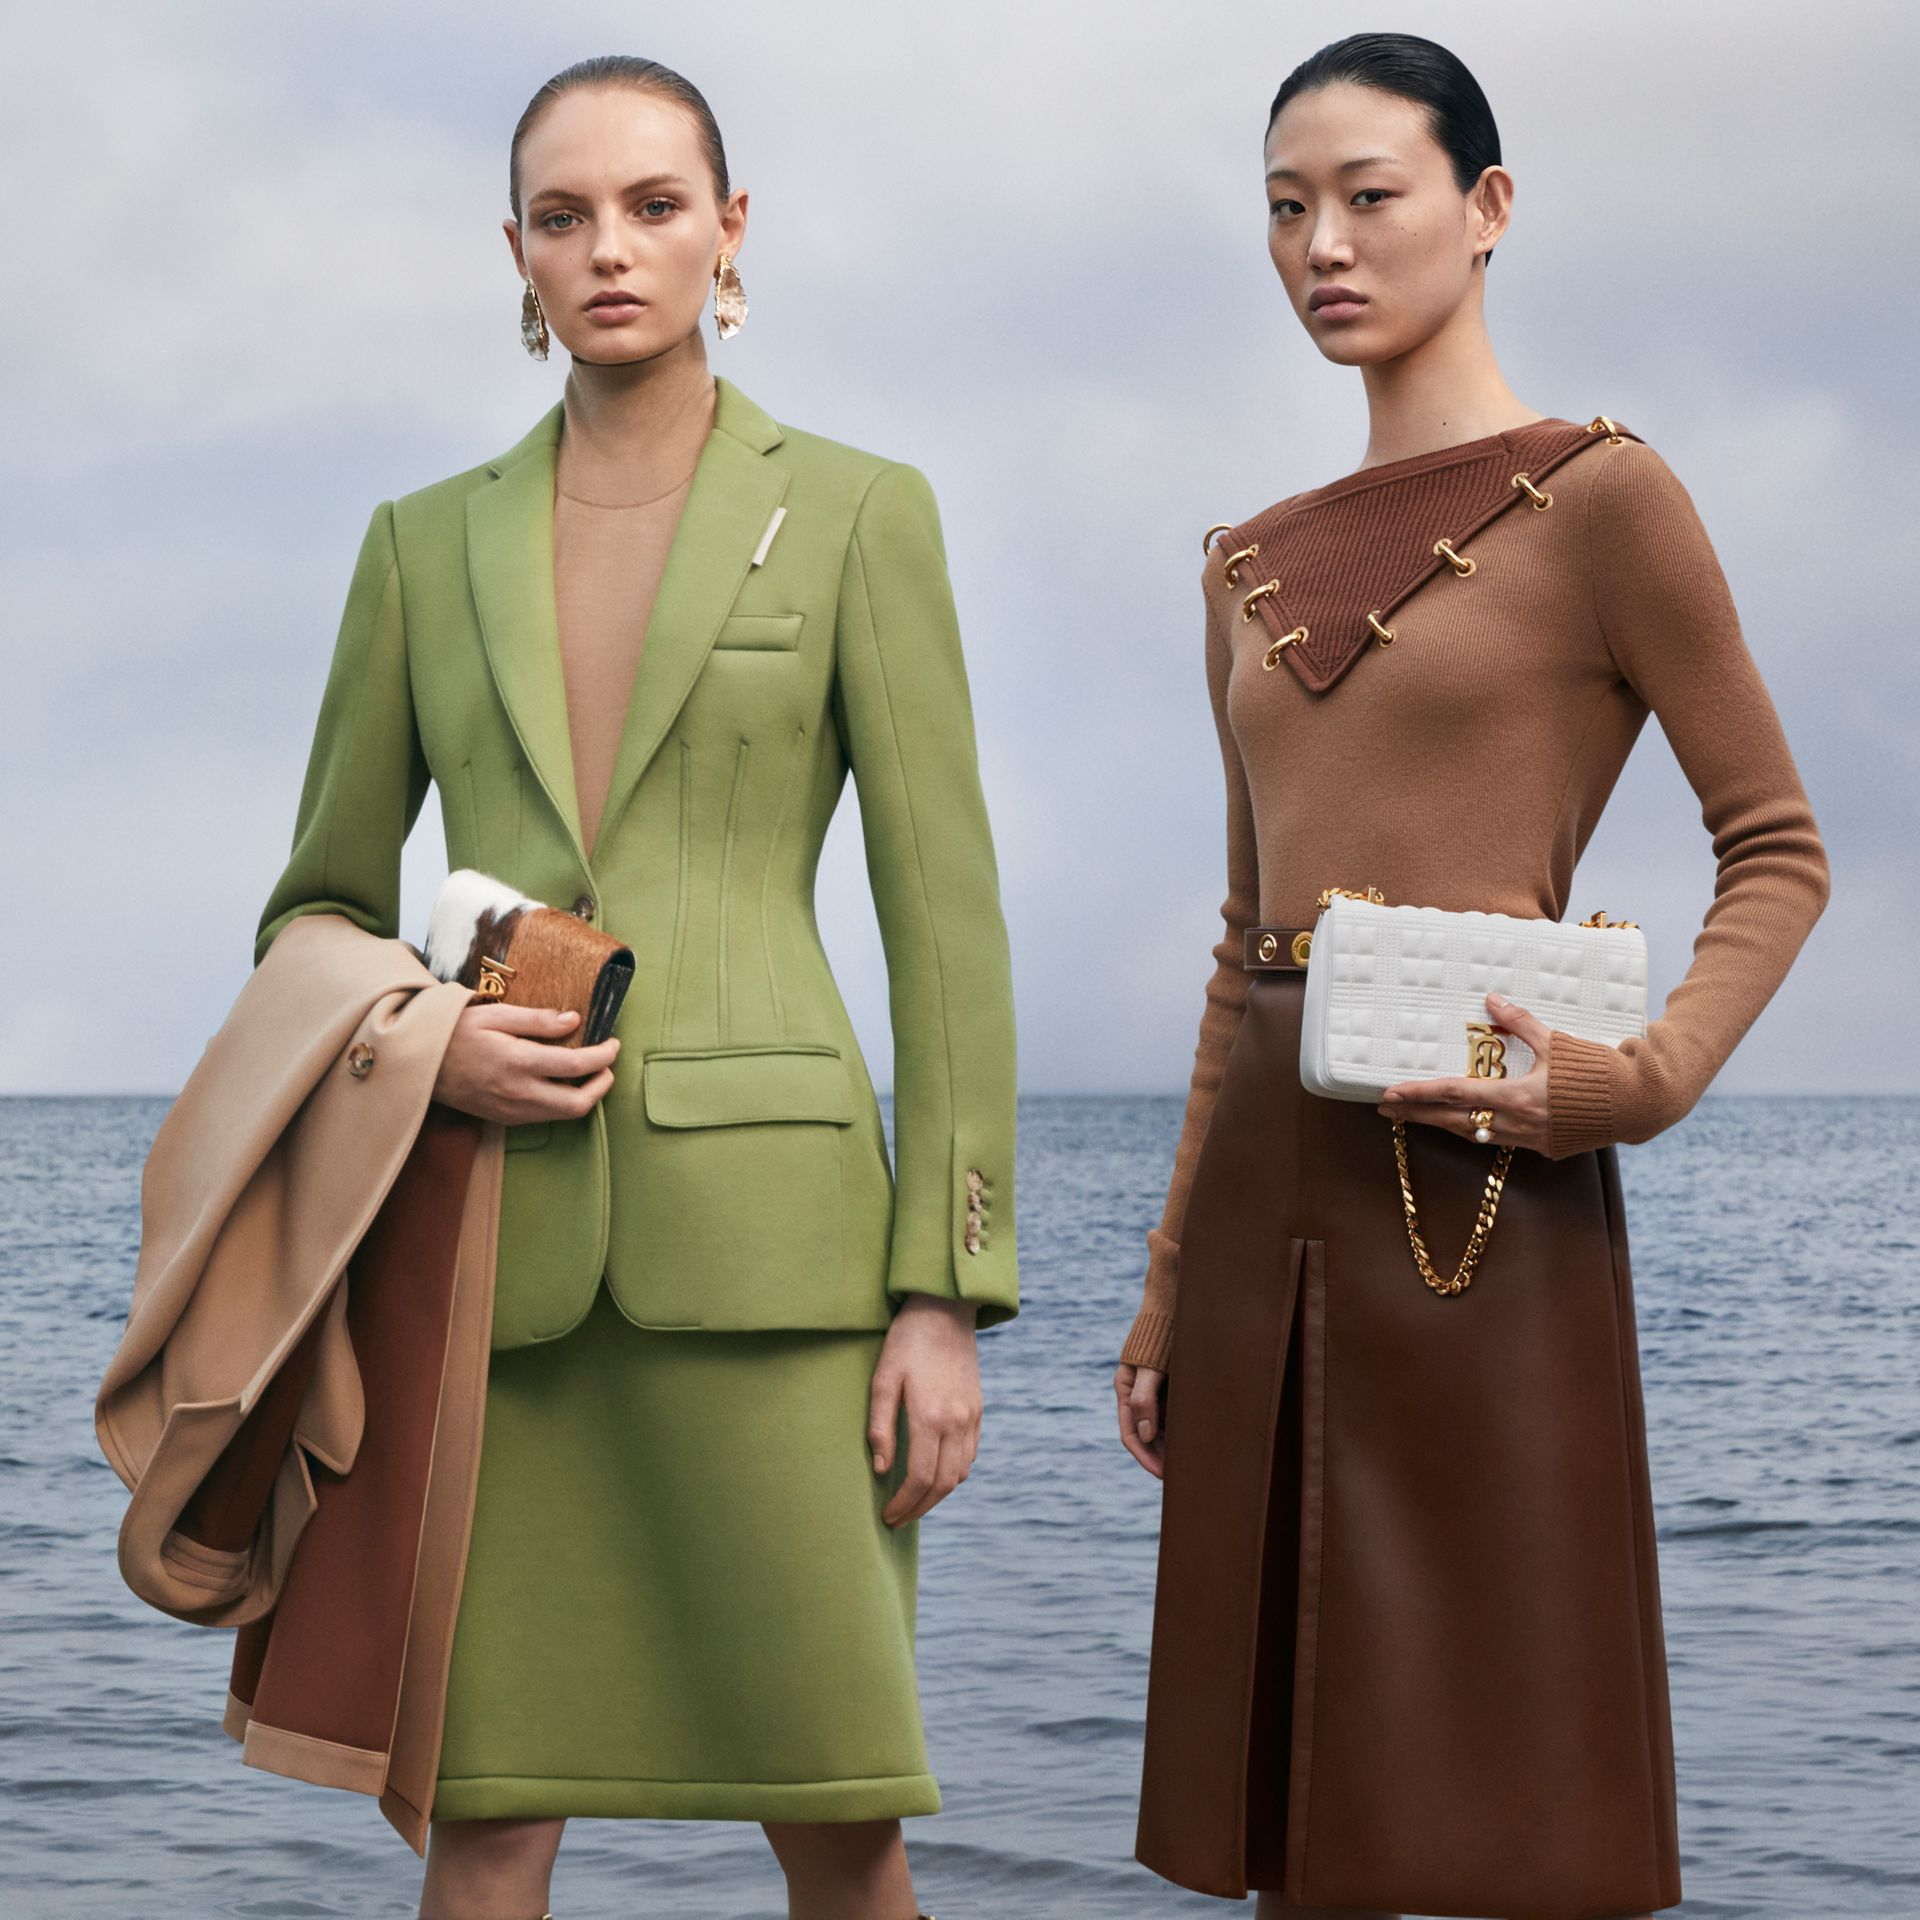 Double-faced Neoprene Tailored Jacket in Cedar Green - Women | Burberry - gallery image 8